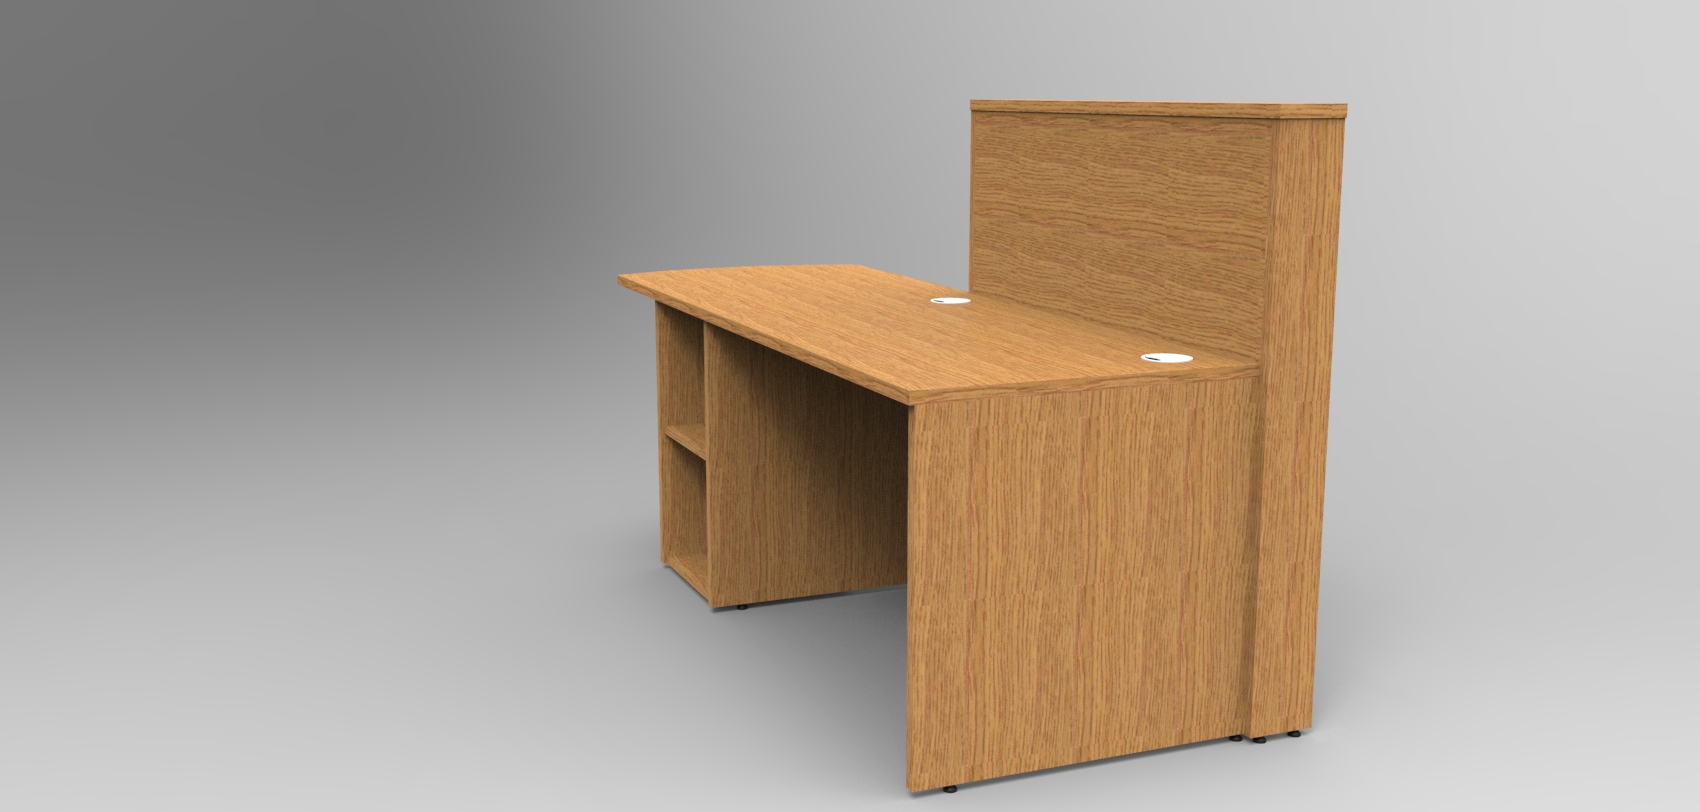 Image 5UA - Tall Union compact Oak reception desk with extension - rear